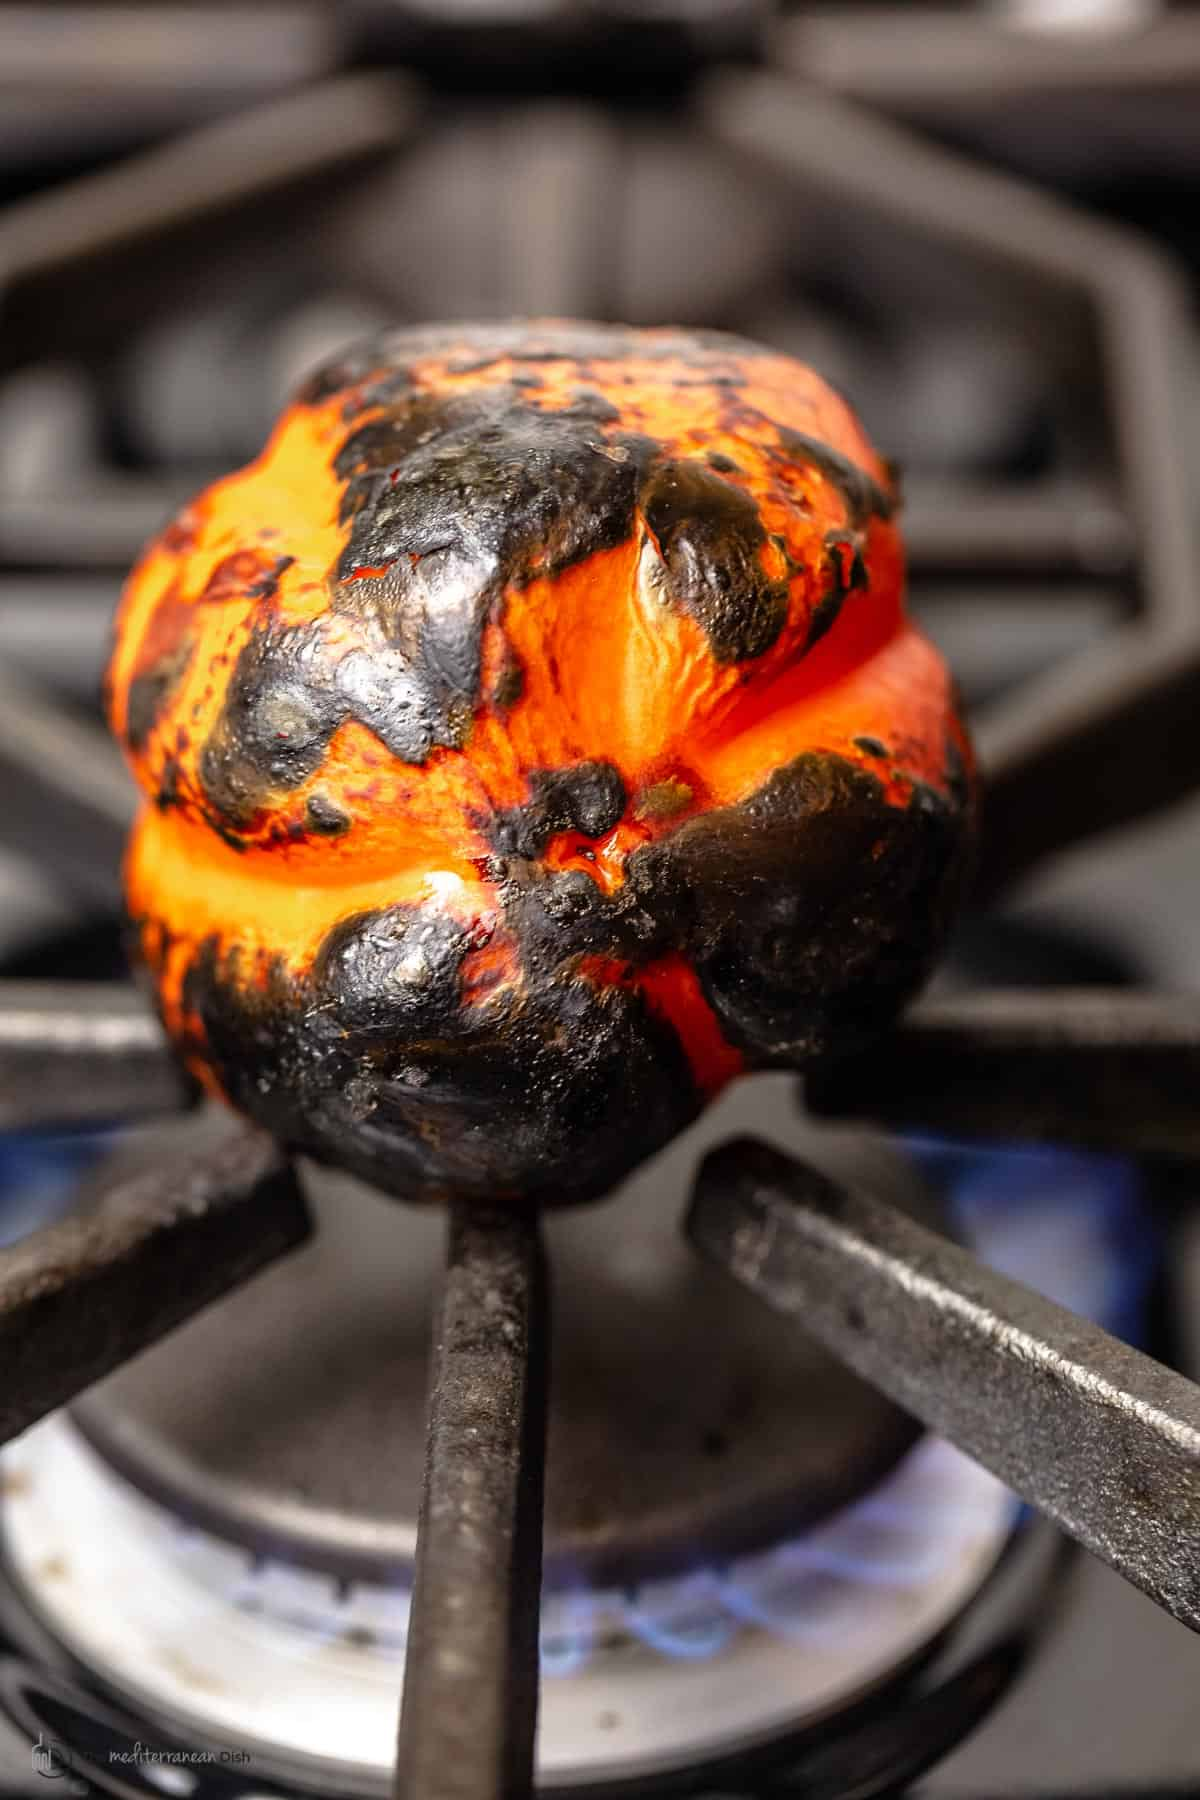 An orange bell pepper roasting on the stovetop